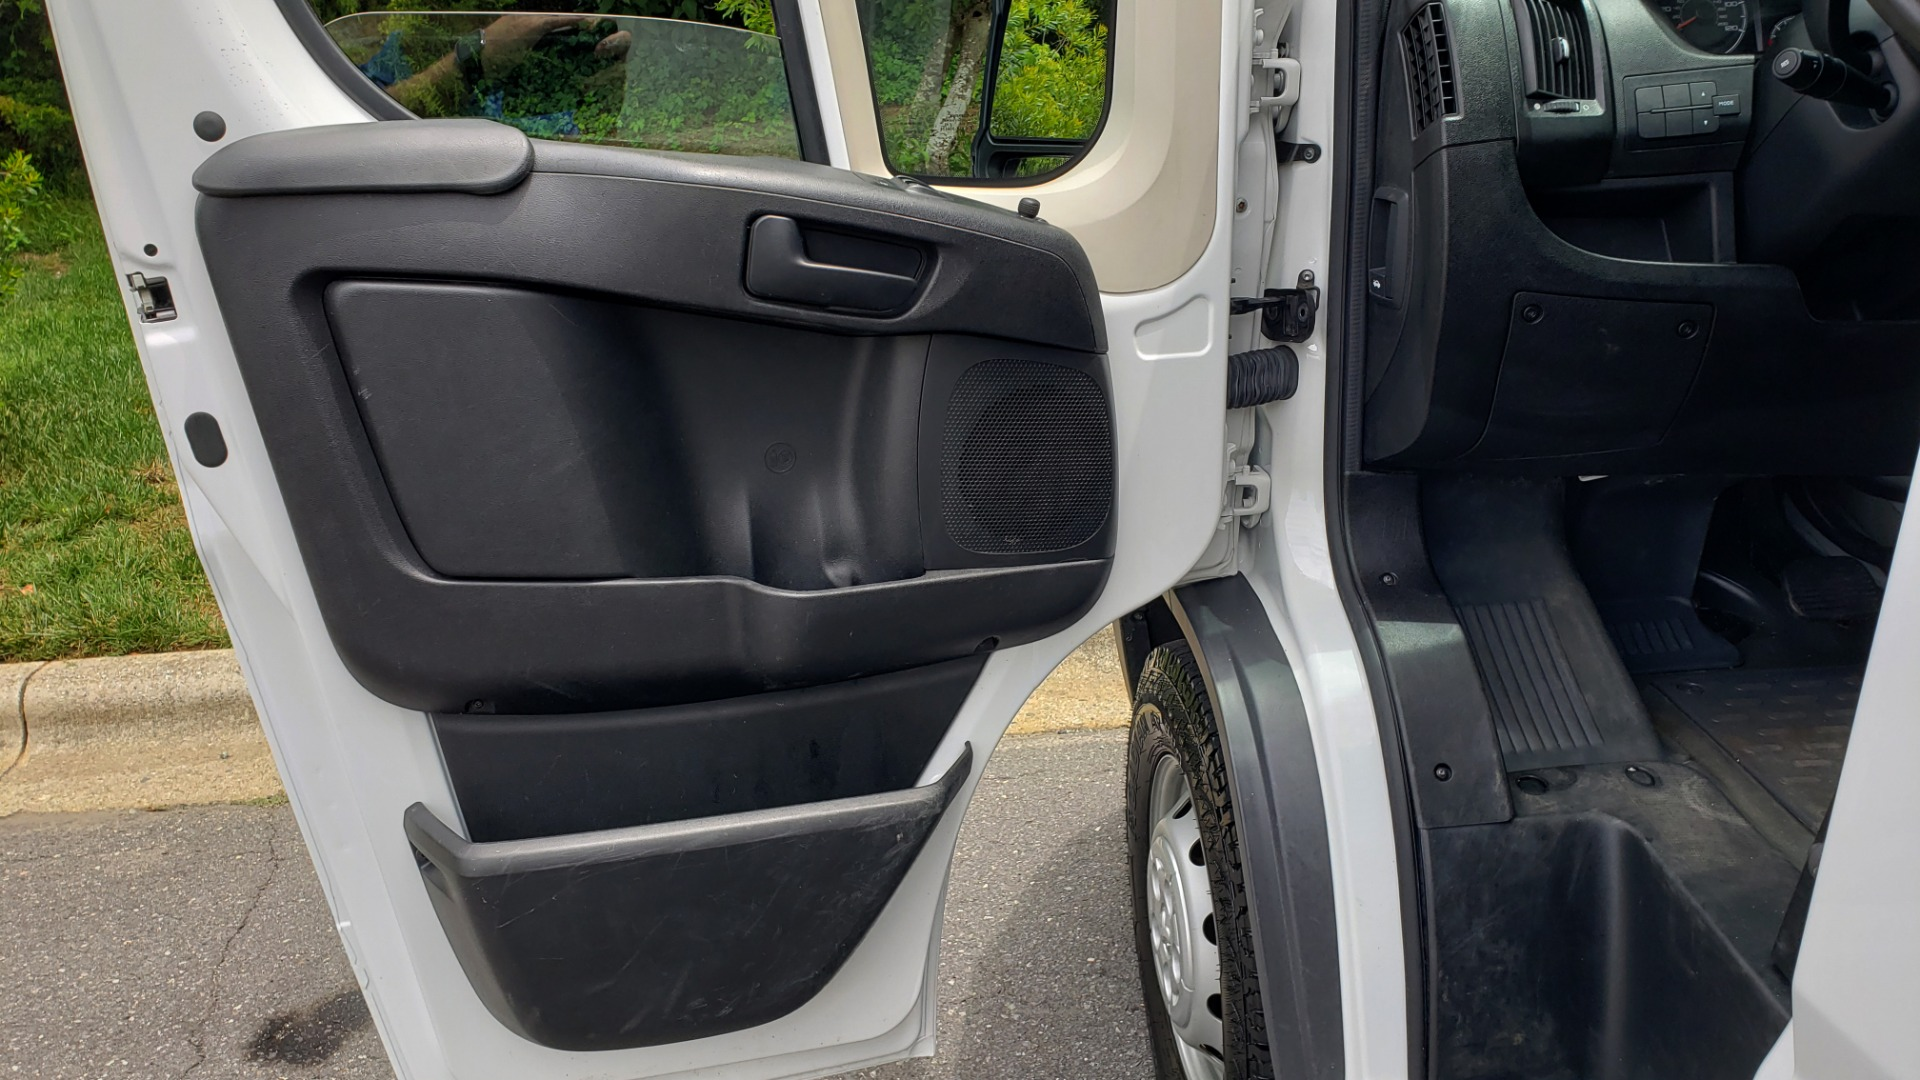 Used 2016 Ram PROMASTER CARGO VAN 136 WB / 3.6L V6 / AUTO / ROOF-RACK / REARVIEW / SEATS 5 for sale $15,995 at Formula Imports in Charlotte NC 28227 36